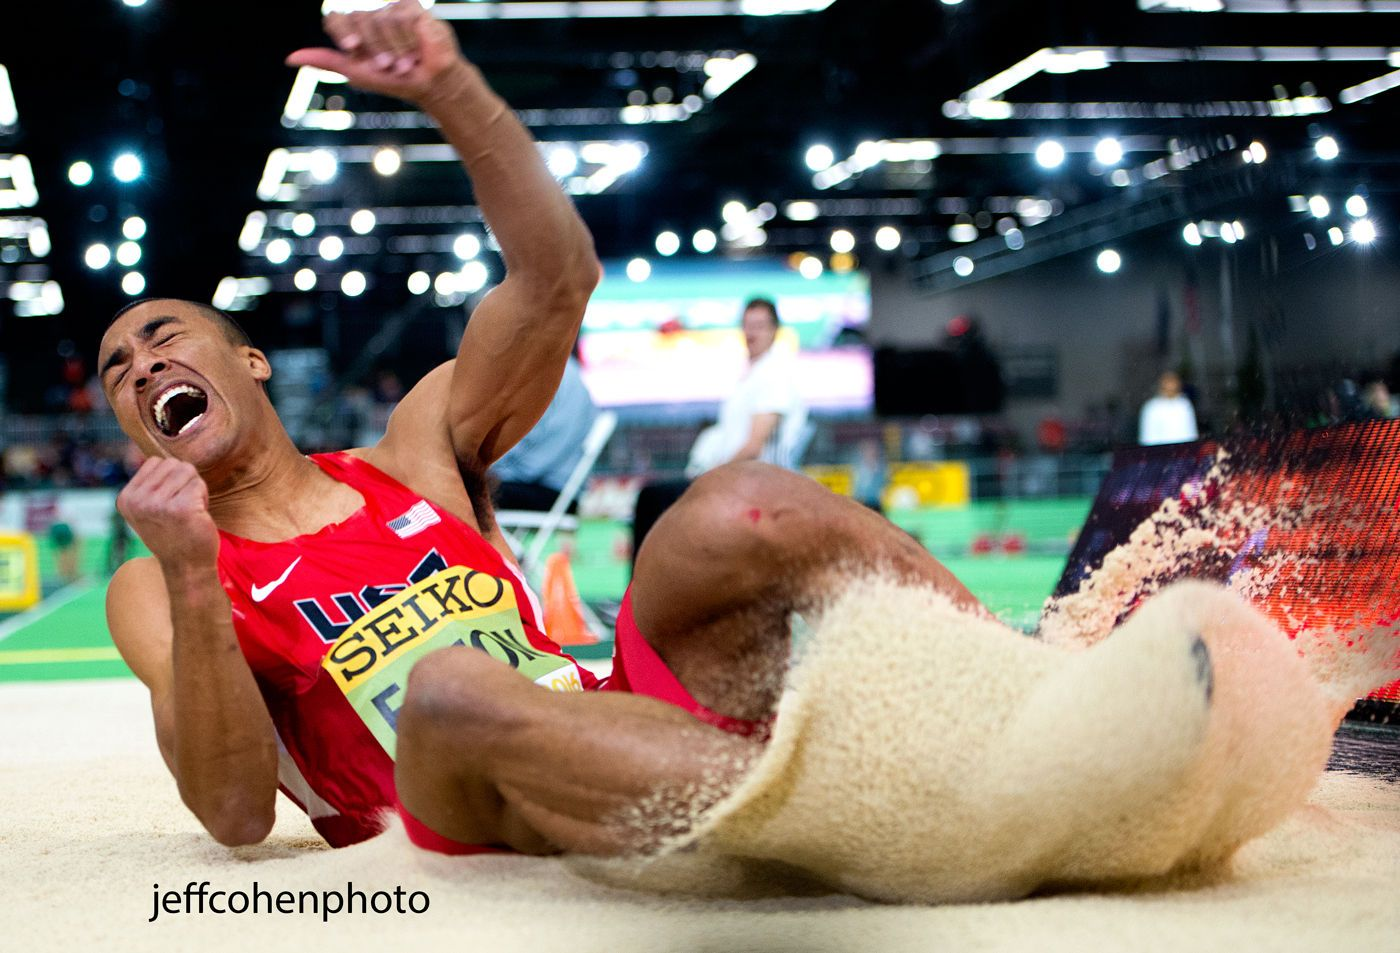 1portland2016_day2_ashton_eaton_lj_2_jeff_cohen_photo_2920_web.jpg